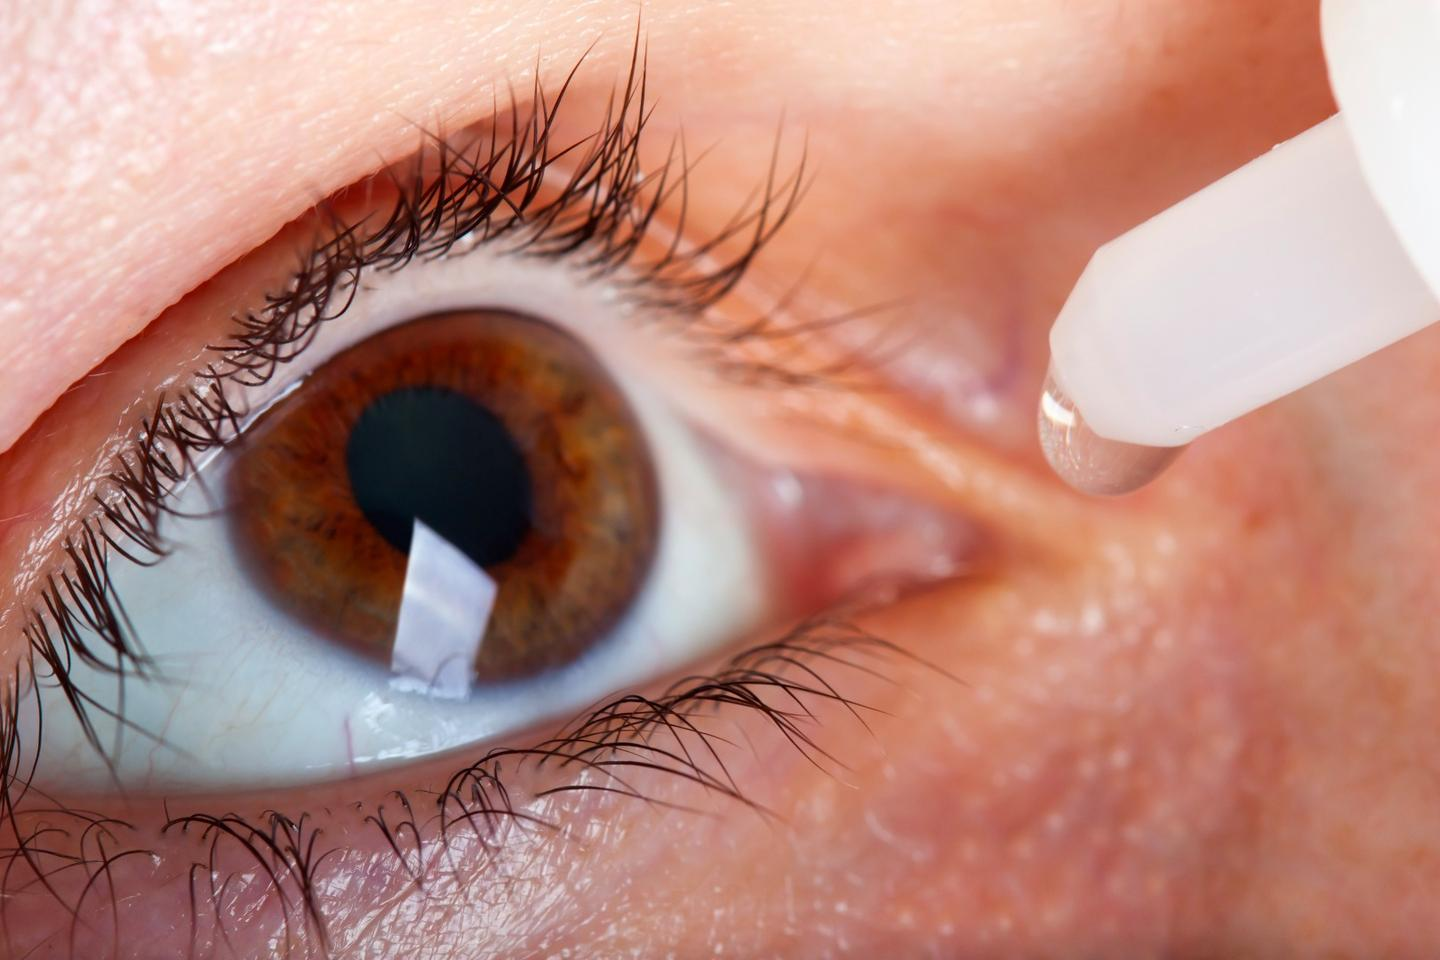 A new treatment for age-related macular degeneration hopes to replace an injection into the eye with simple eye drops